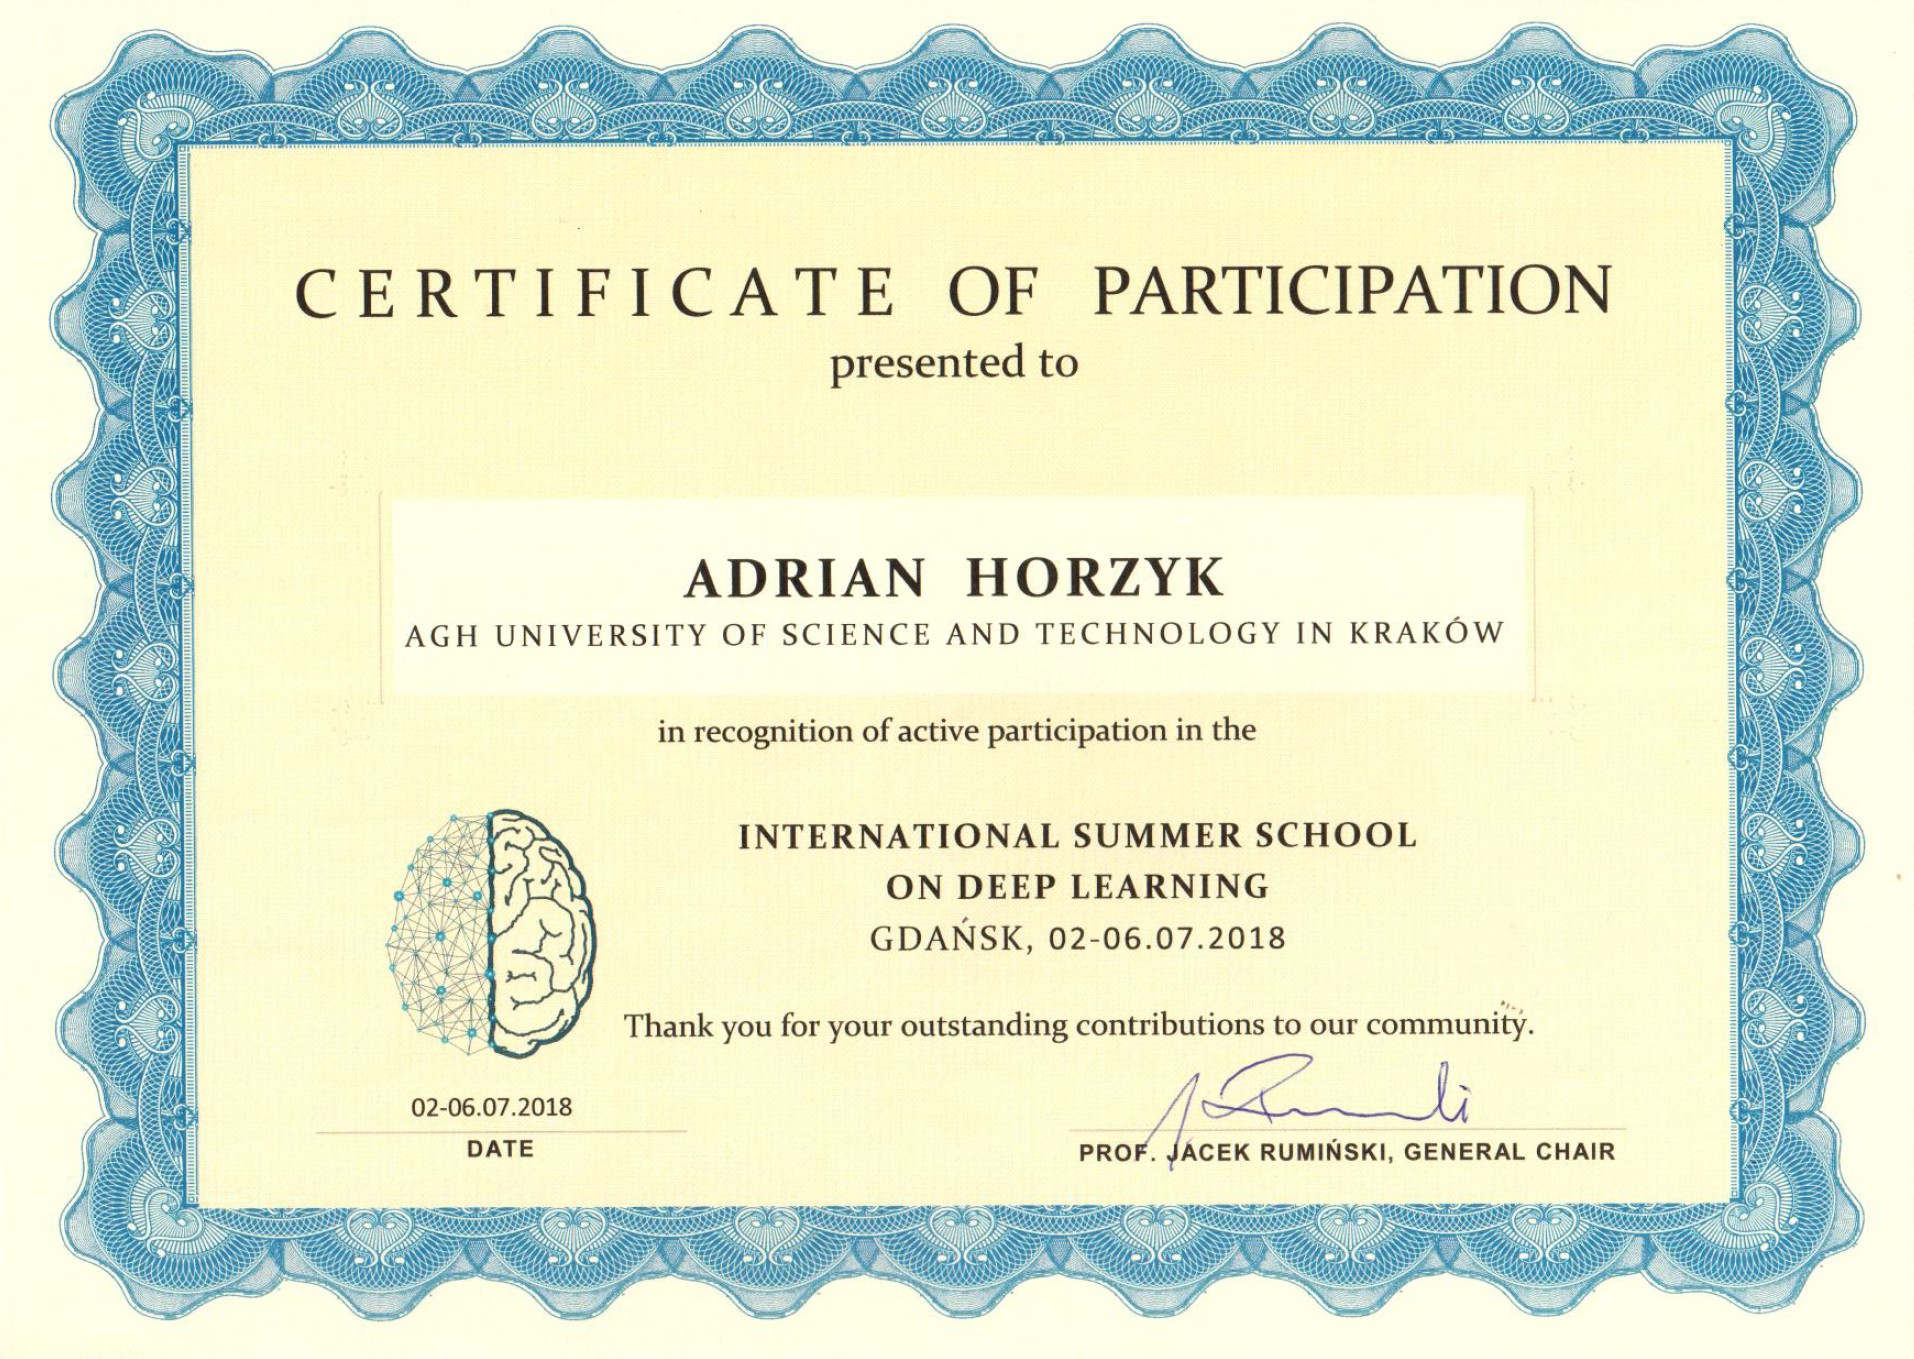 Adrian Horzyk - Artificial Intelligence and Machine Learning